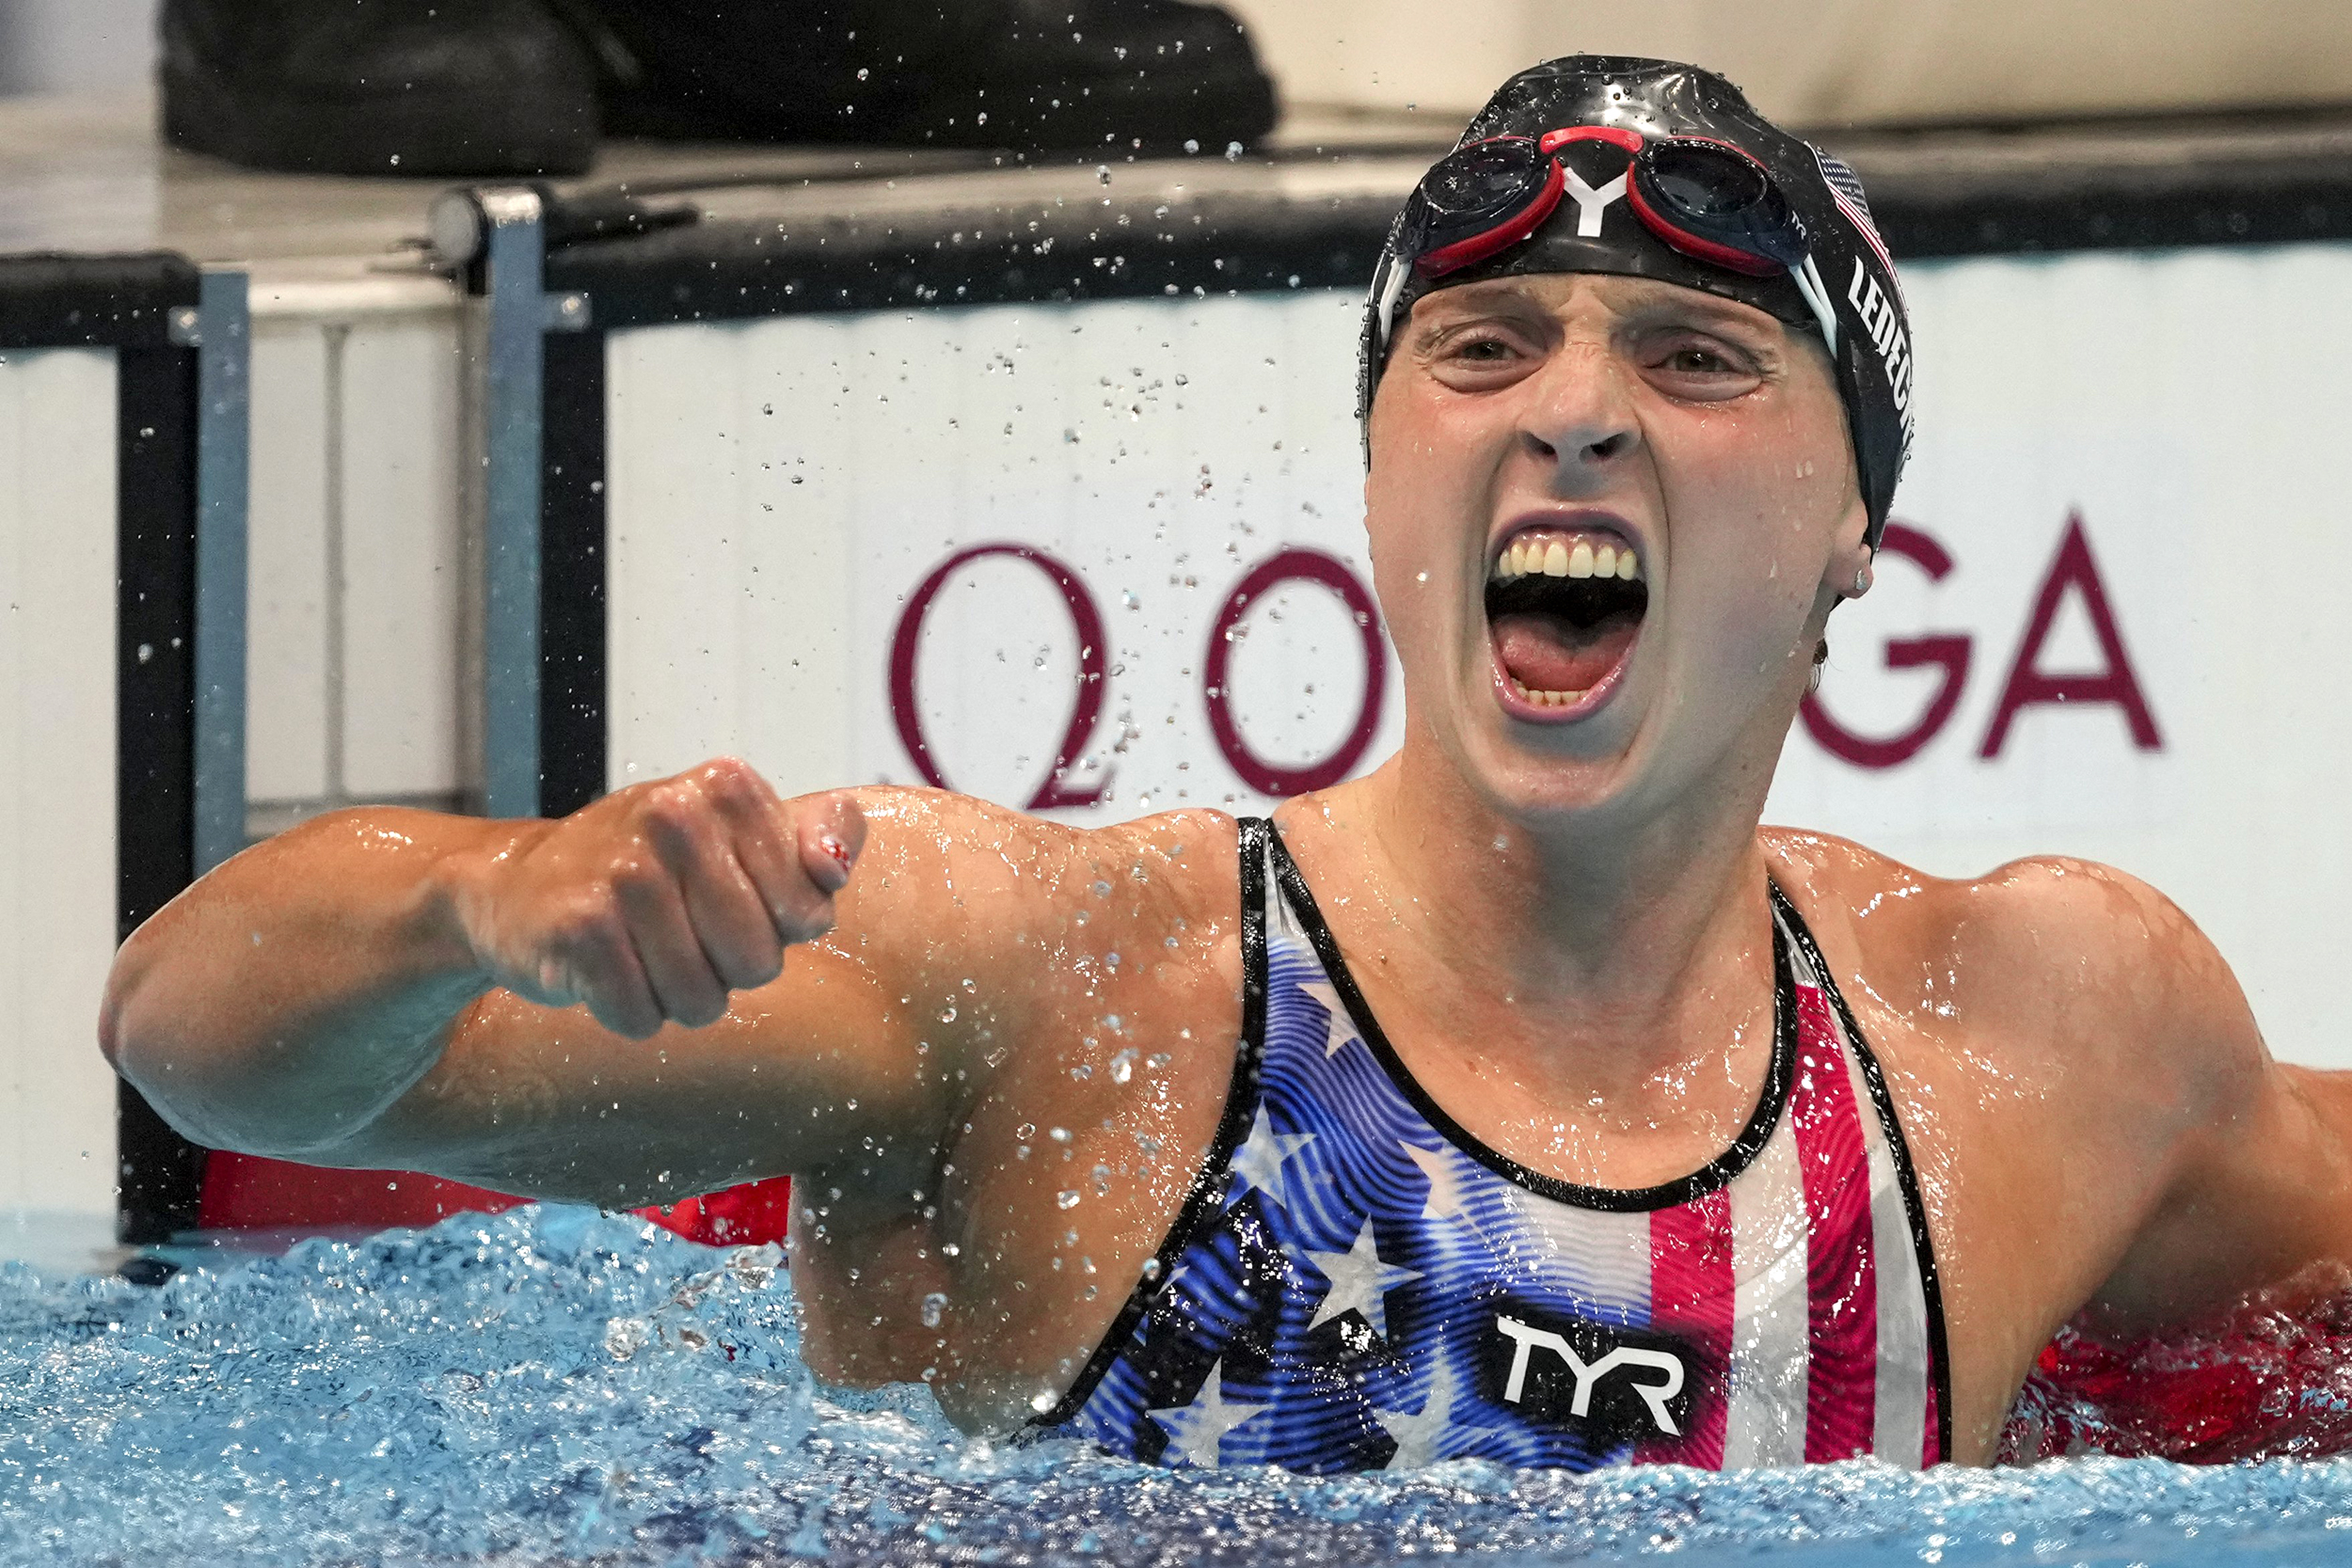 Katie Ledecky claims gold in Olympic debut of 1500-meter race